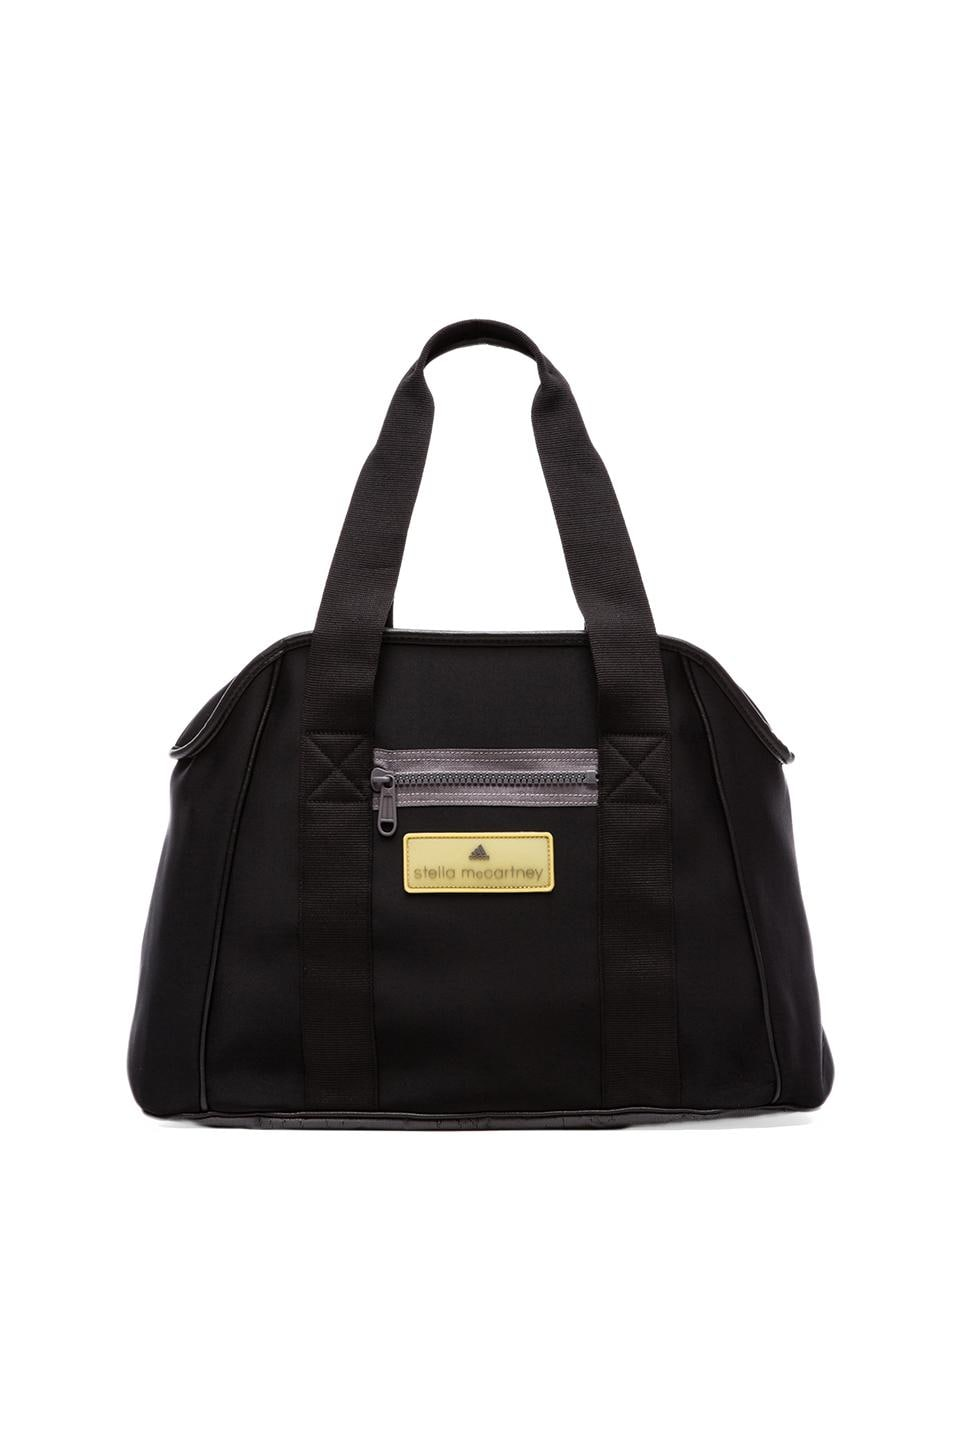 stella mccartney adidas Tasche price, Stella McCartney